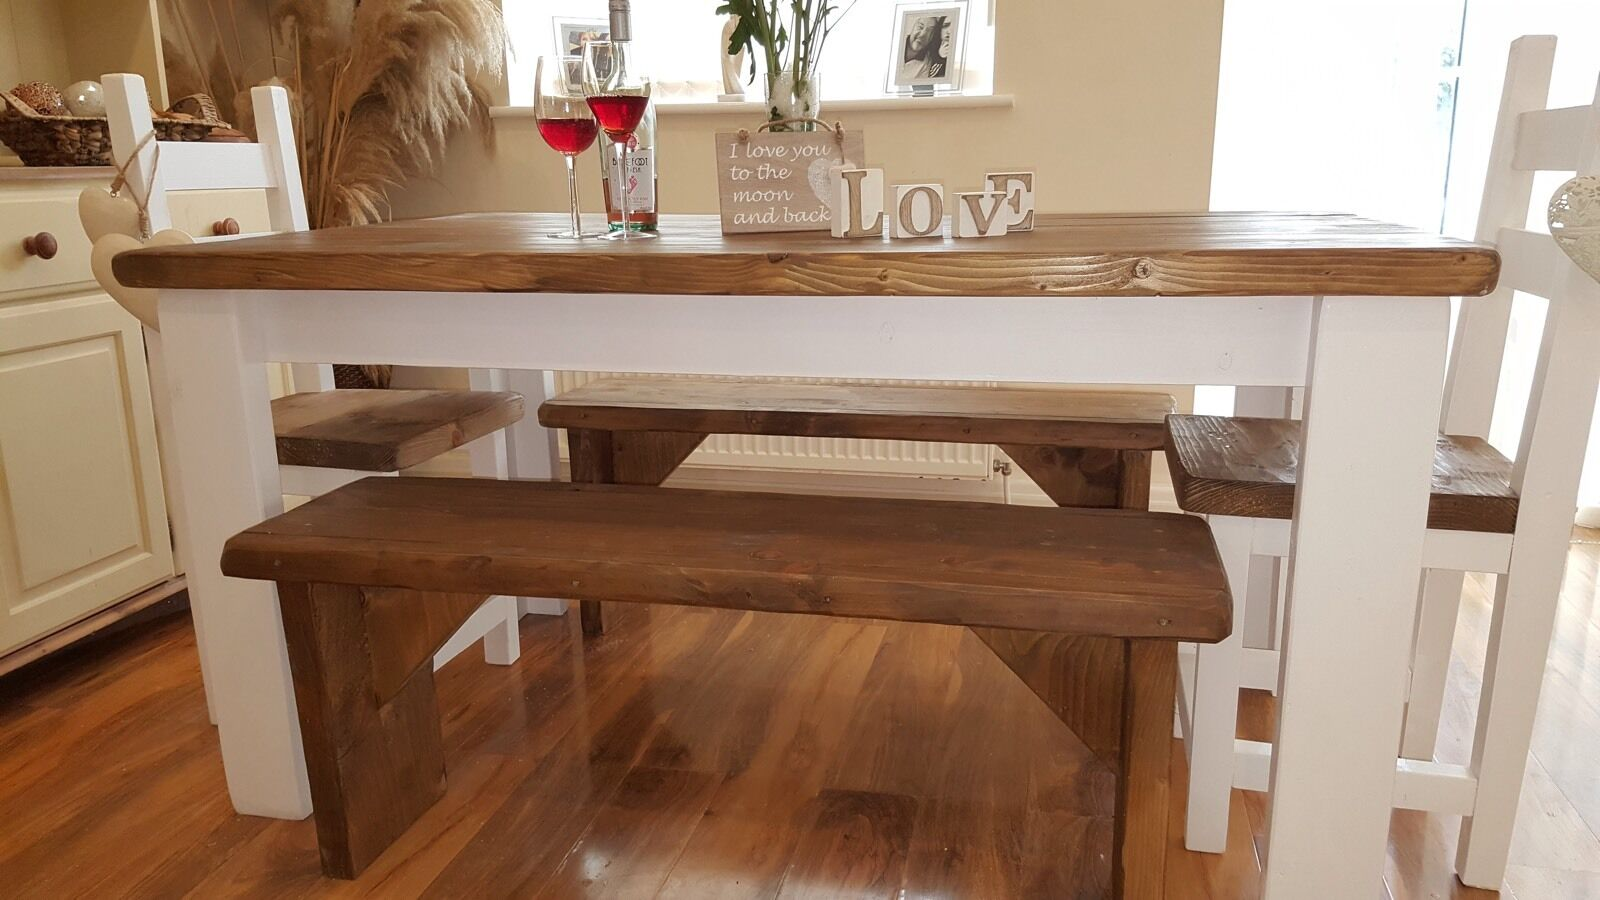 Shabby Chic Dining Room Table Shabby Chic In White Or Cream Rustic Dining Table 2 Chairs And